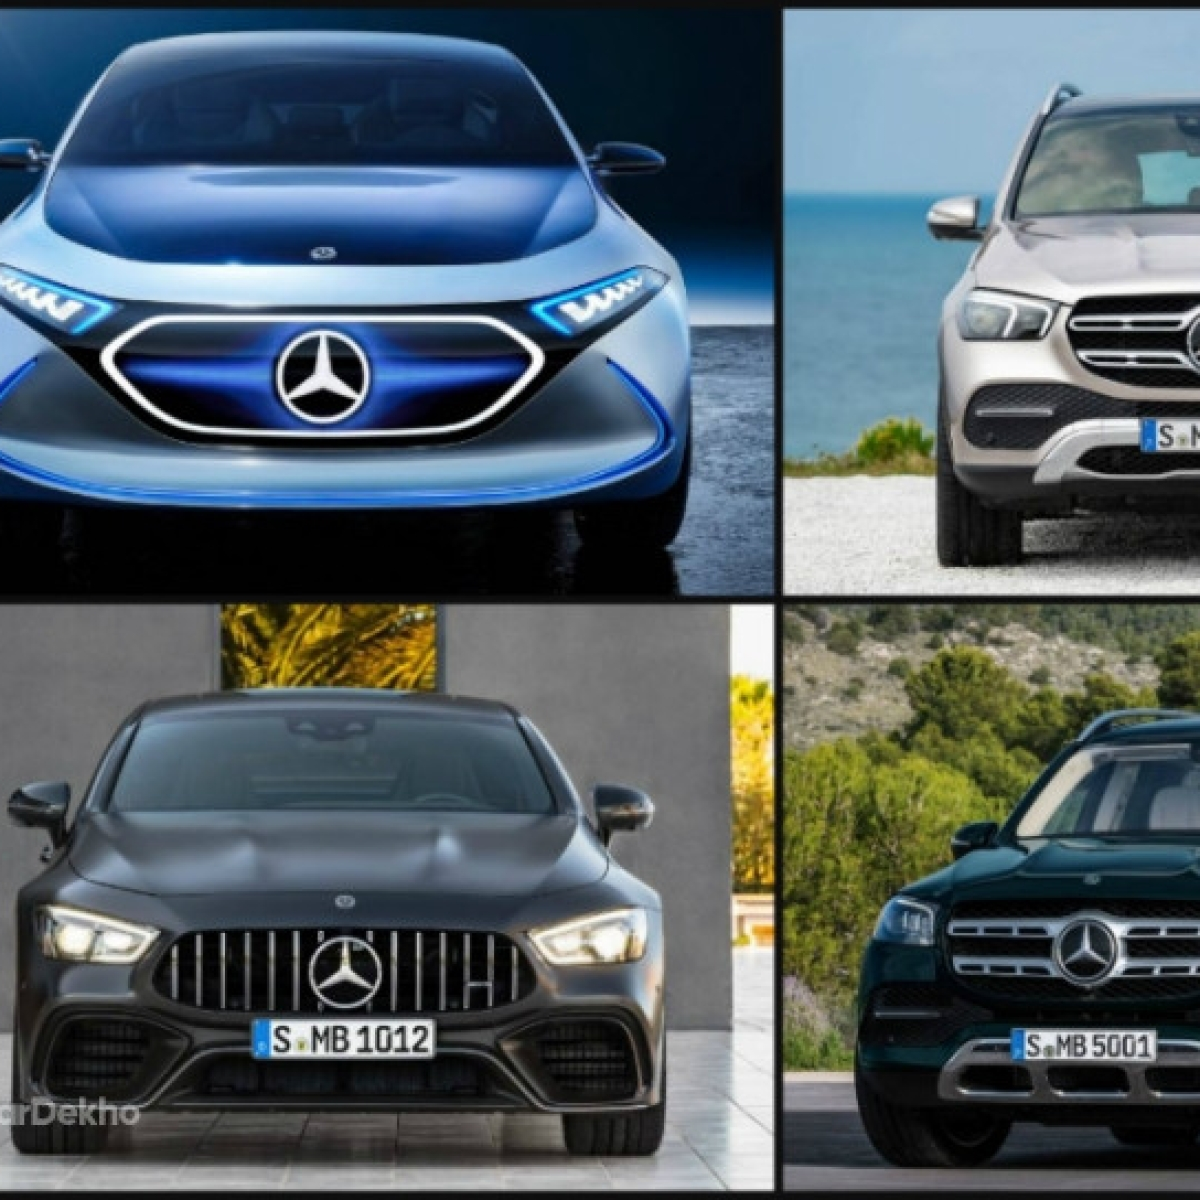 Auto Expo 2020: Mercedes-Benz to bring mix of Luxury, Electric and AMG